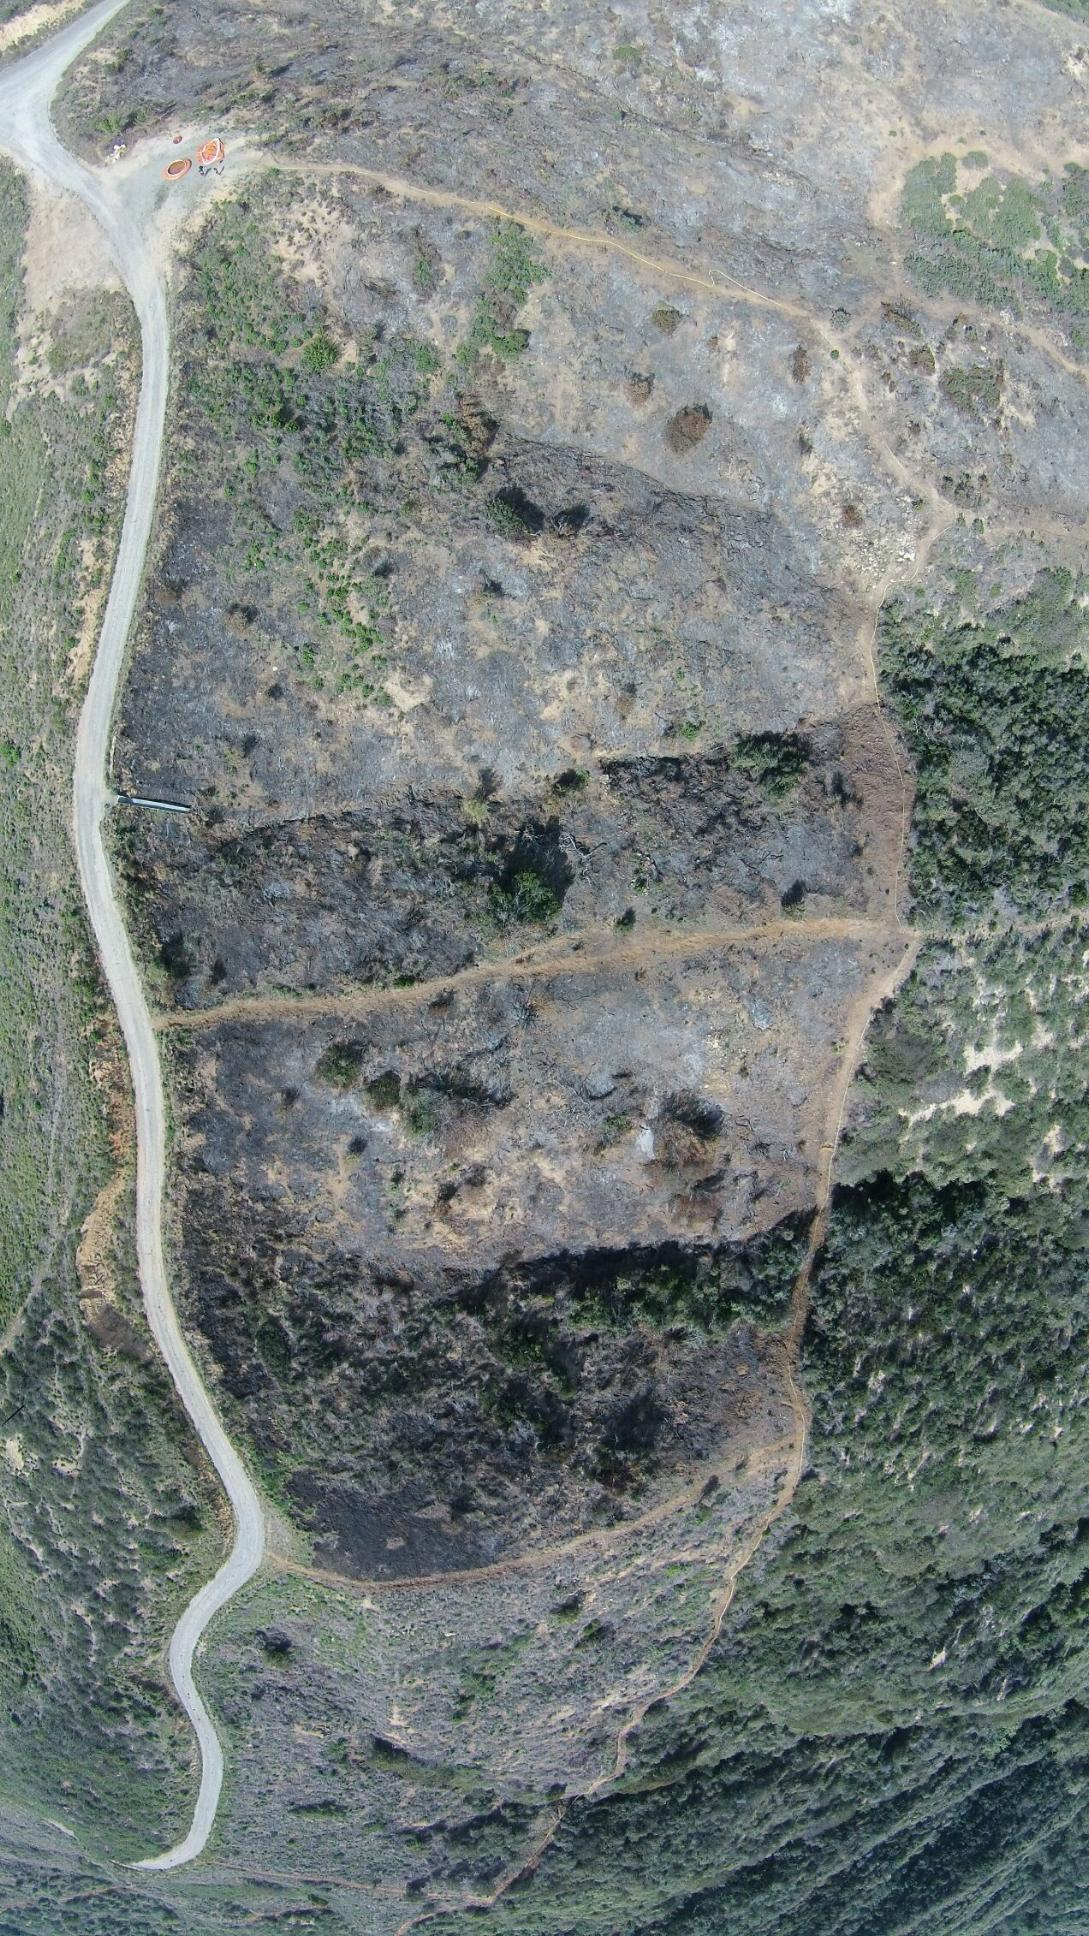 image of overhead look at a burn area